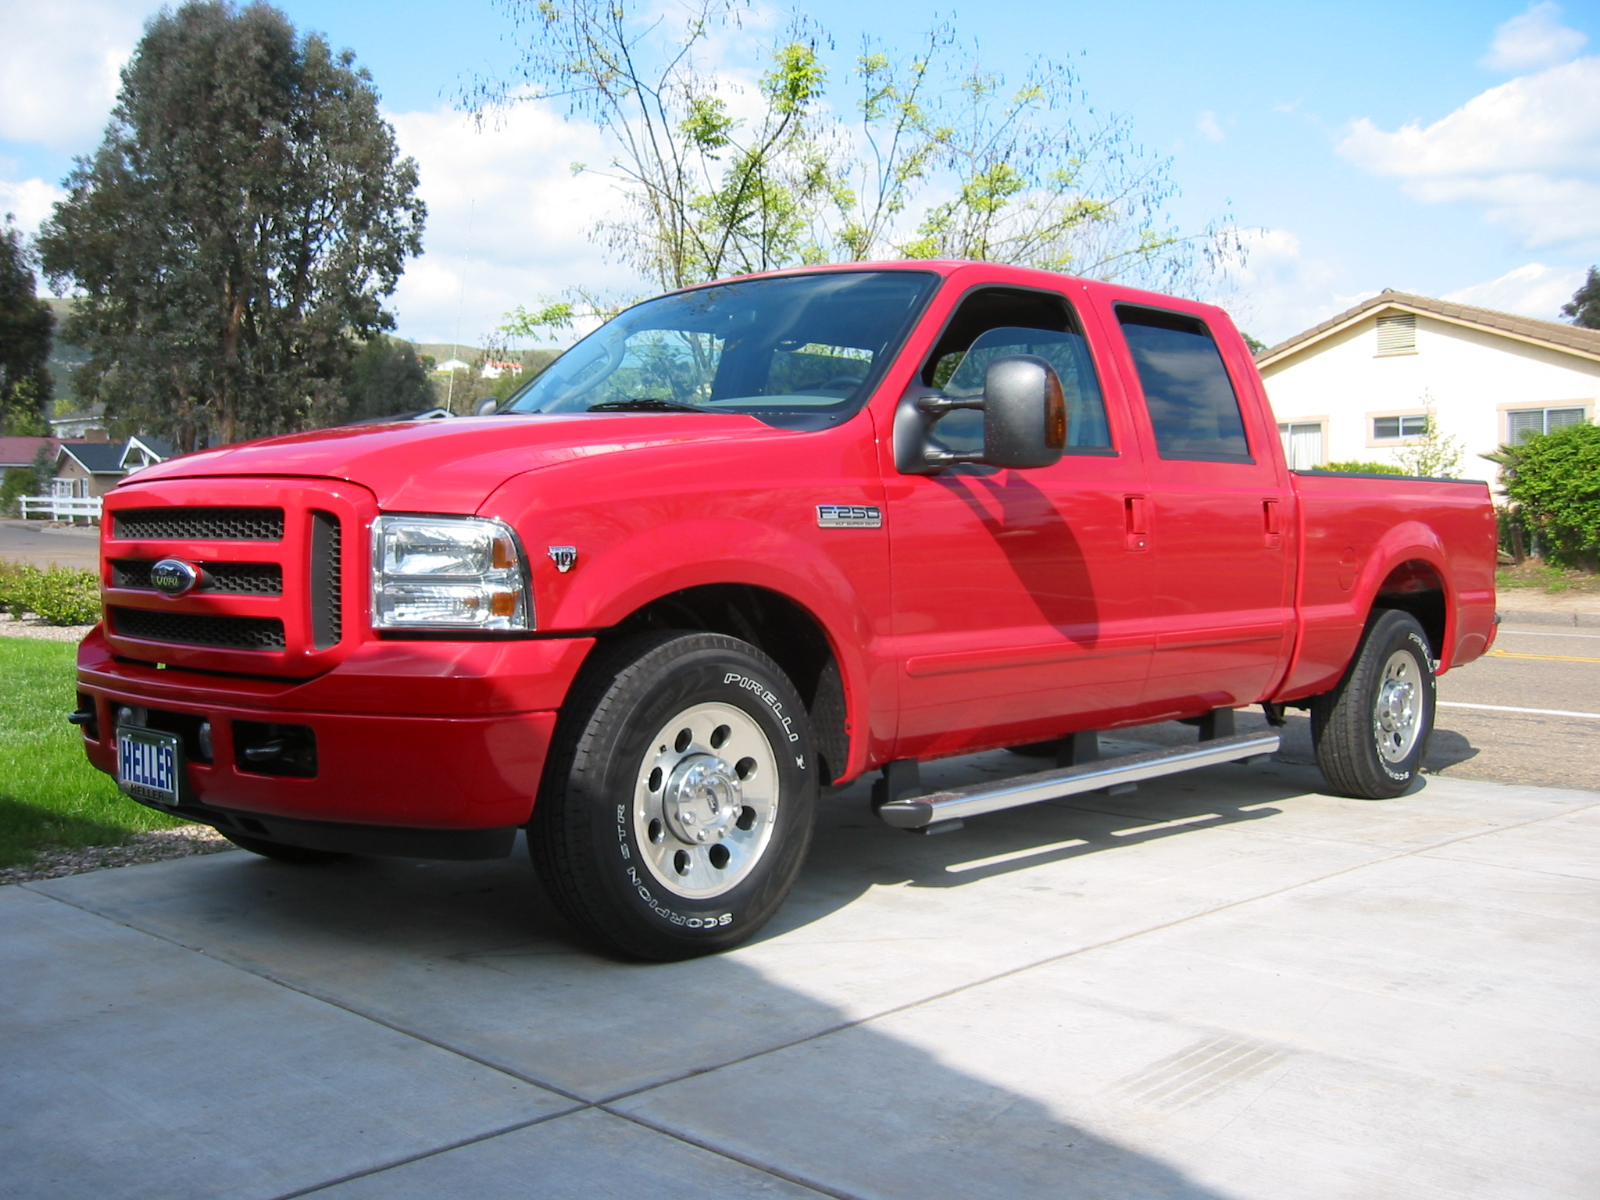 2005 Ford F-250 Super Duty 4 Dr XLT Crew Cab LB picture